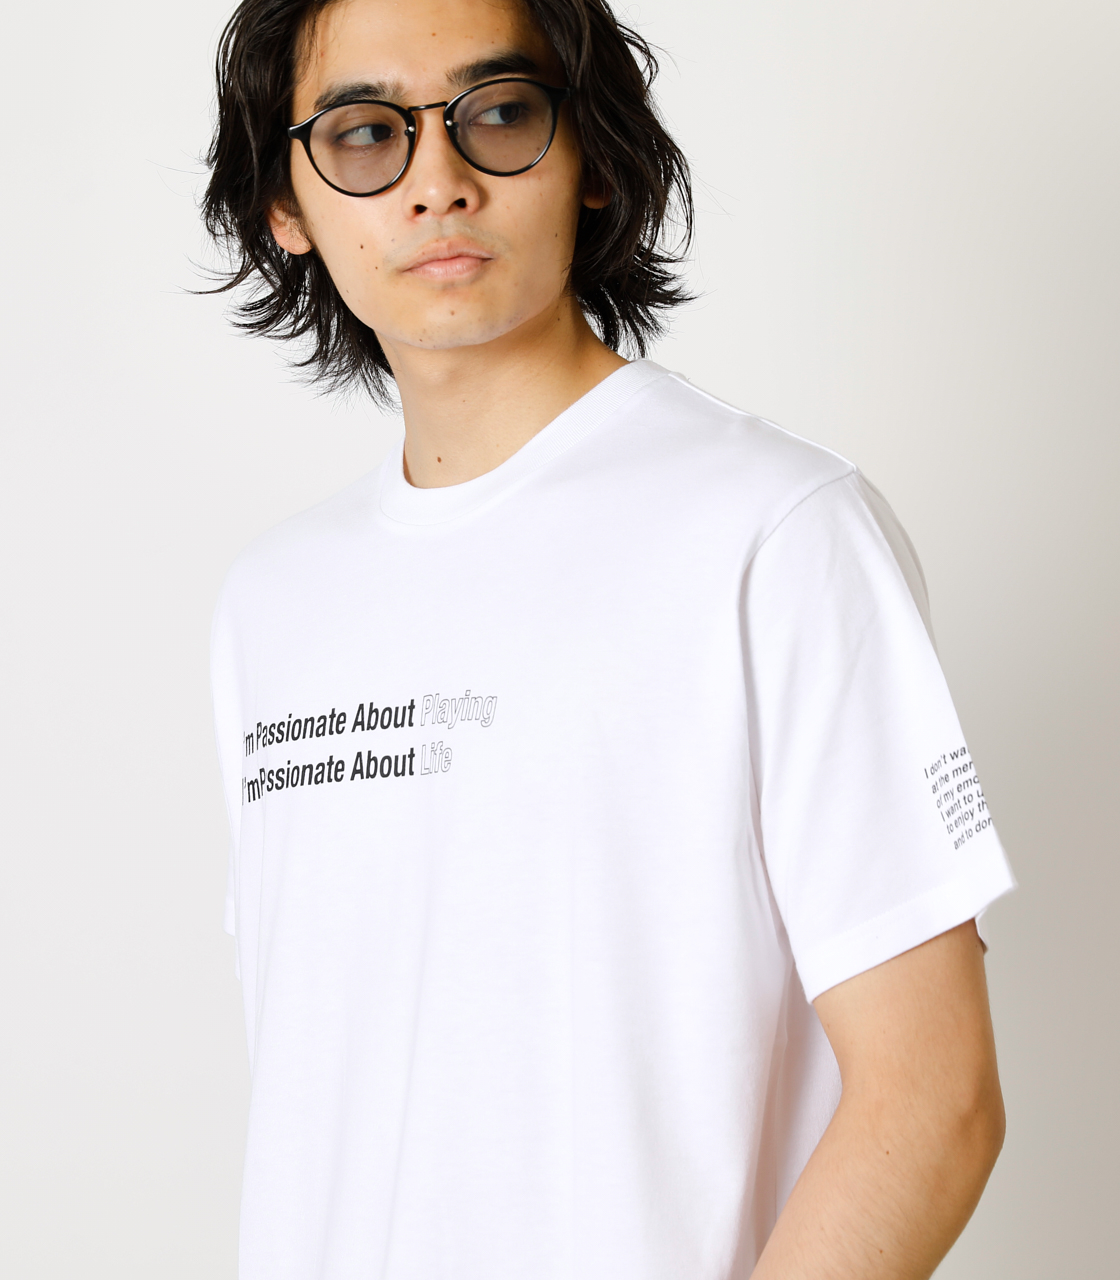 PASSIONATE ABOUT TEE/パッショネイトアバウトTシャツ 詳細画像 WHT 2